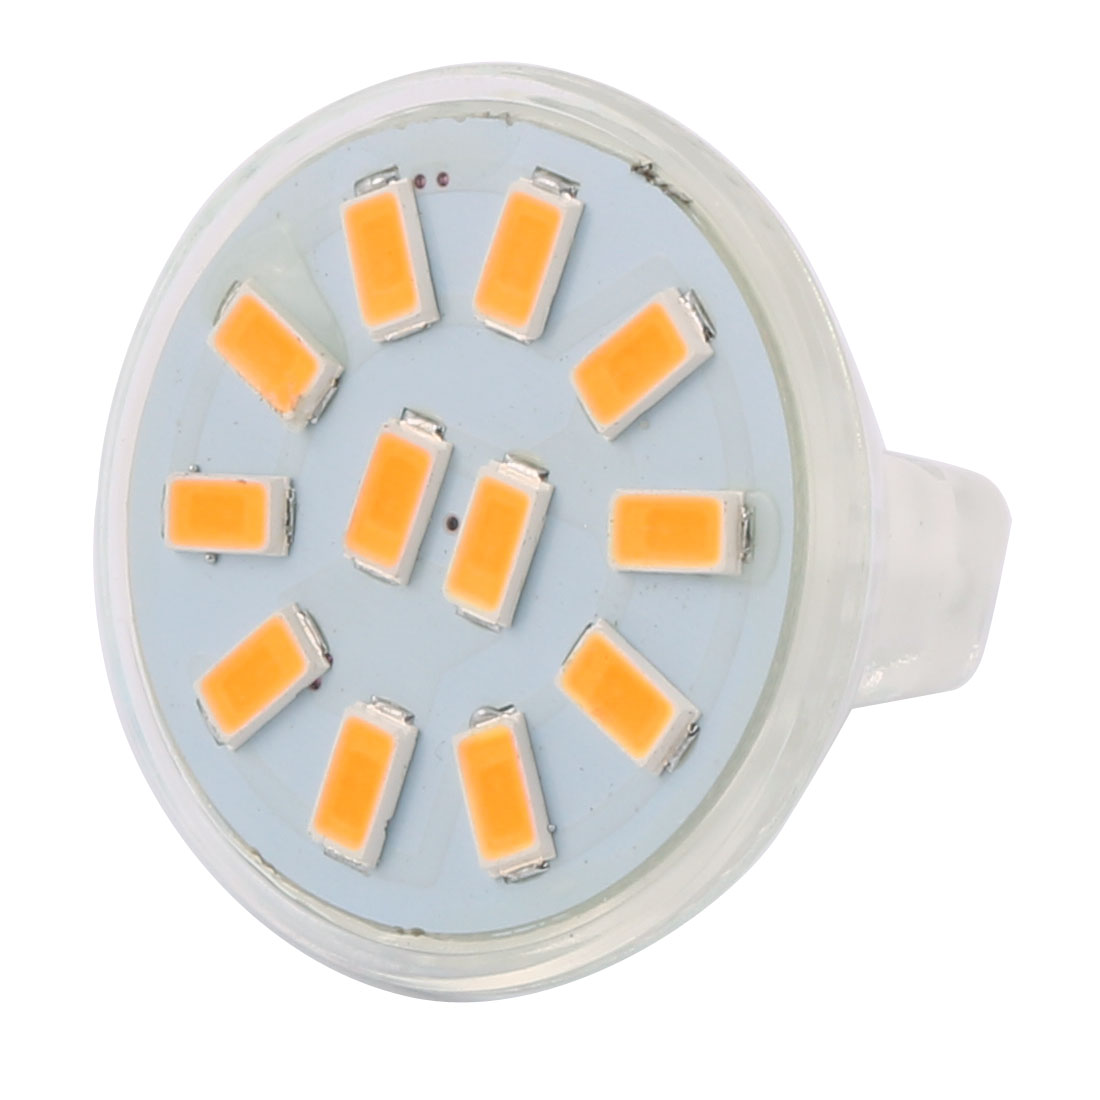 DC 12V 3W MR11 5733 SMD 12 LEDs LED Bulb Light Spotlight Lamp Lighting Warm White